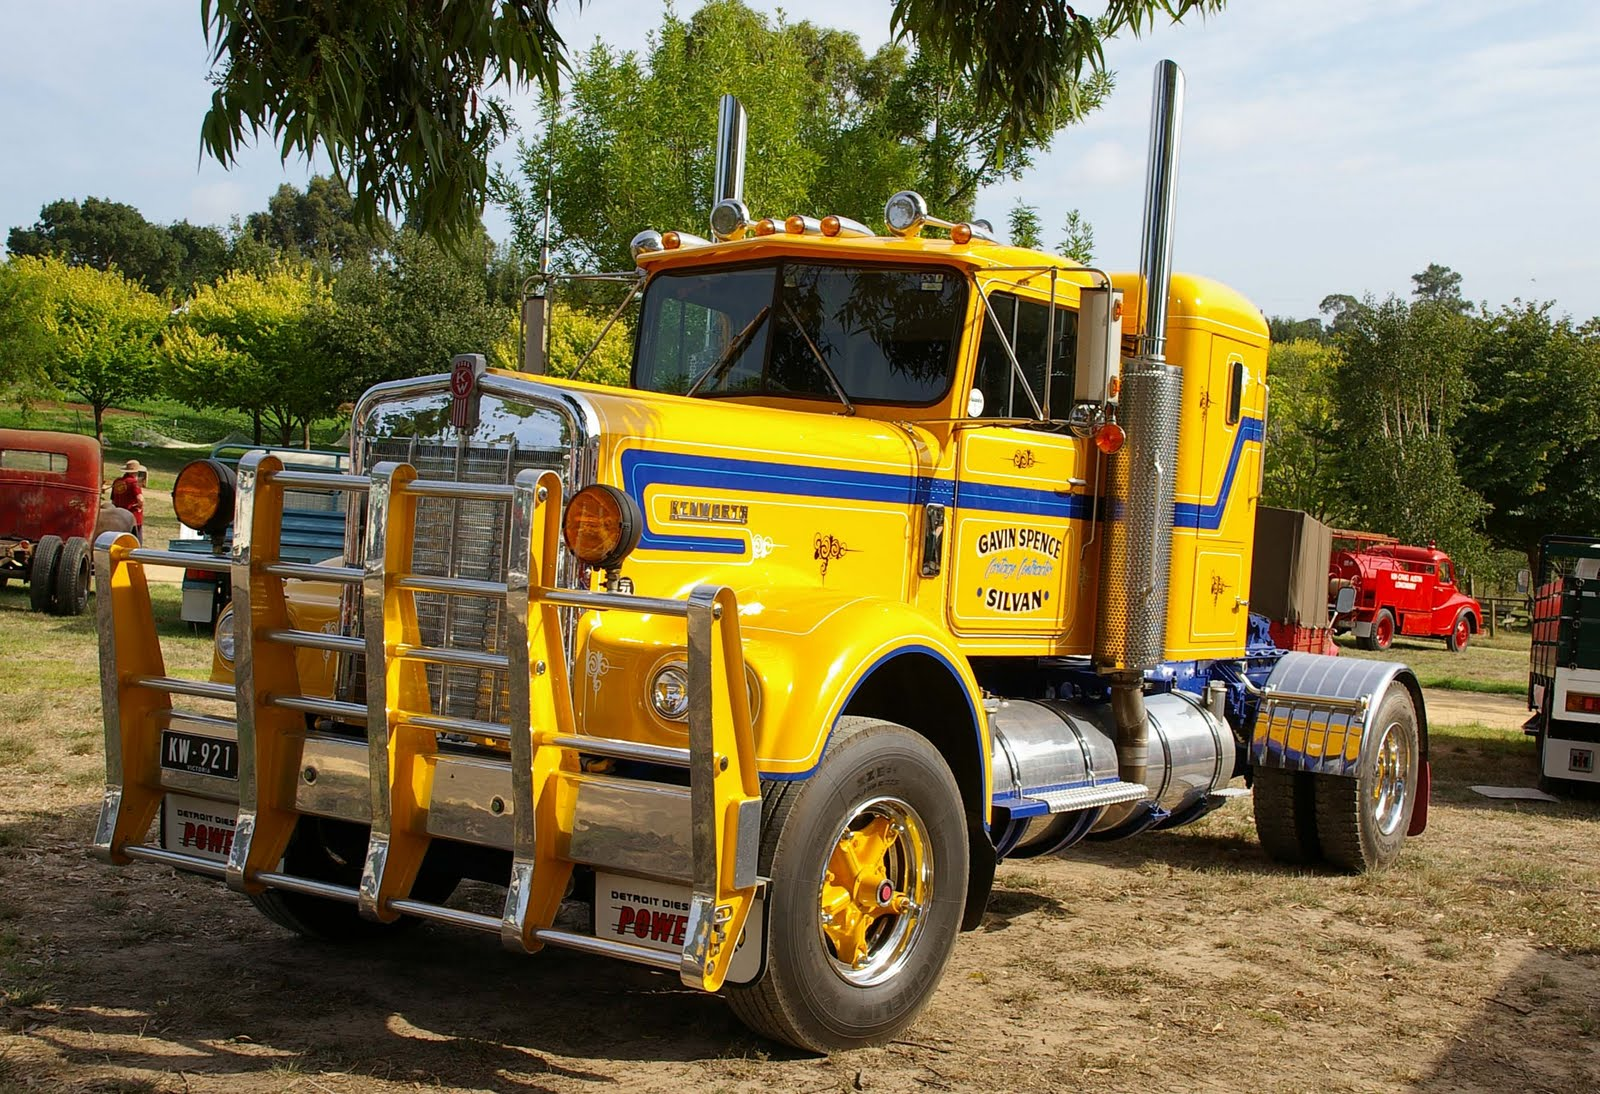 1957 Kenworth Trucks for Sale http://historictrucks.blogspot.com/2010/04/trucks-in-action-2010-part-2.html